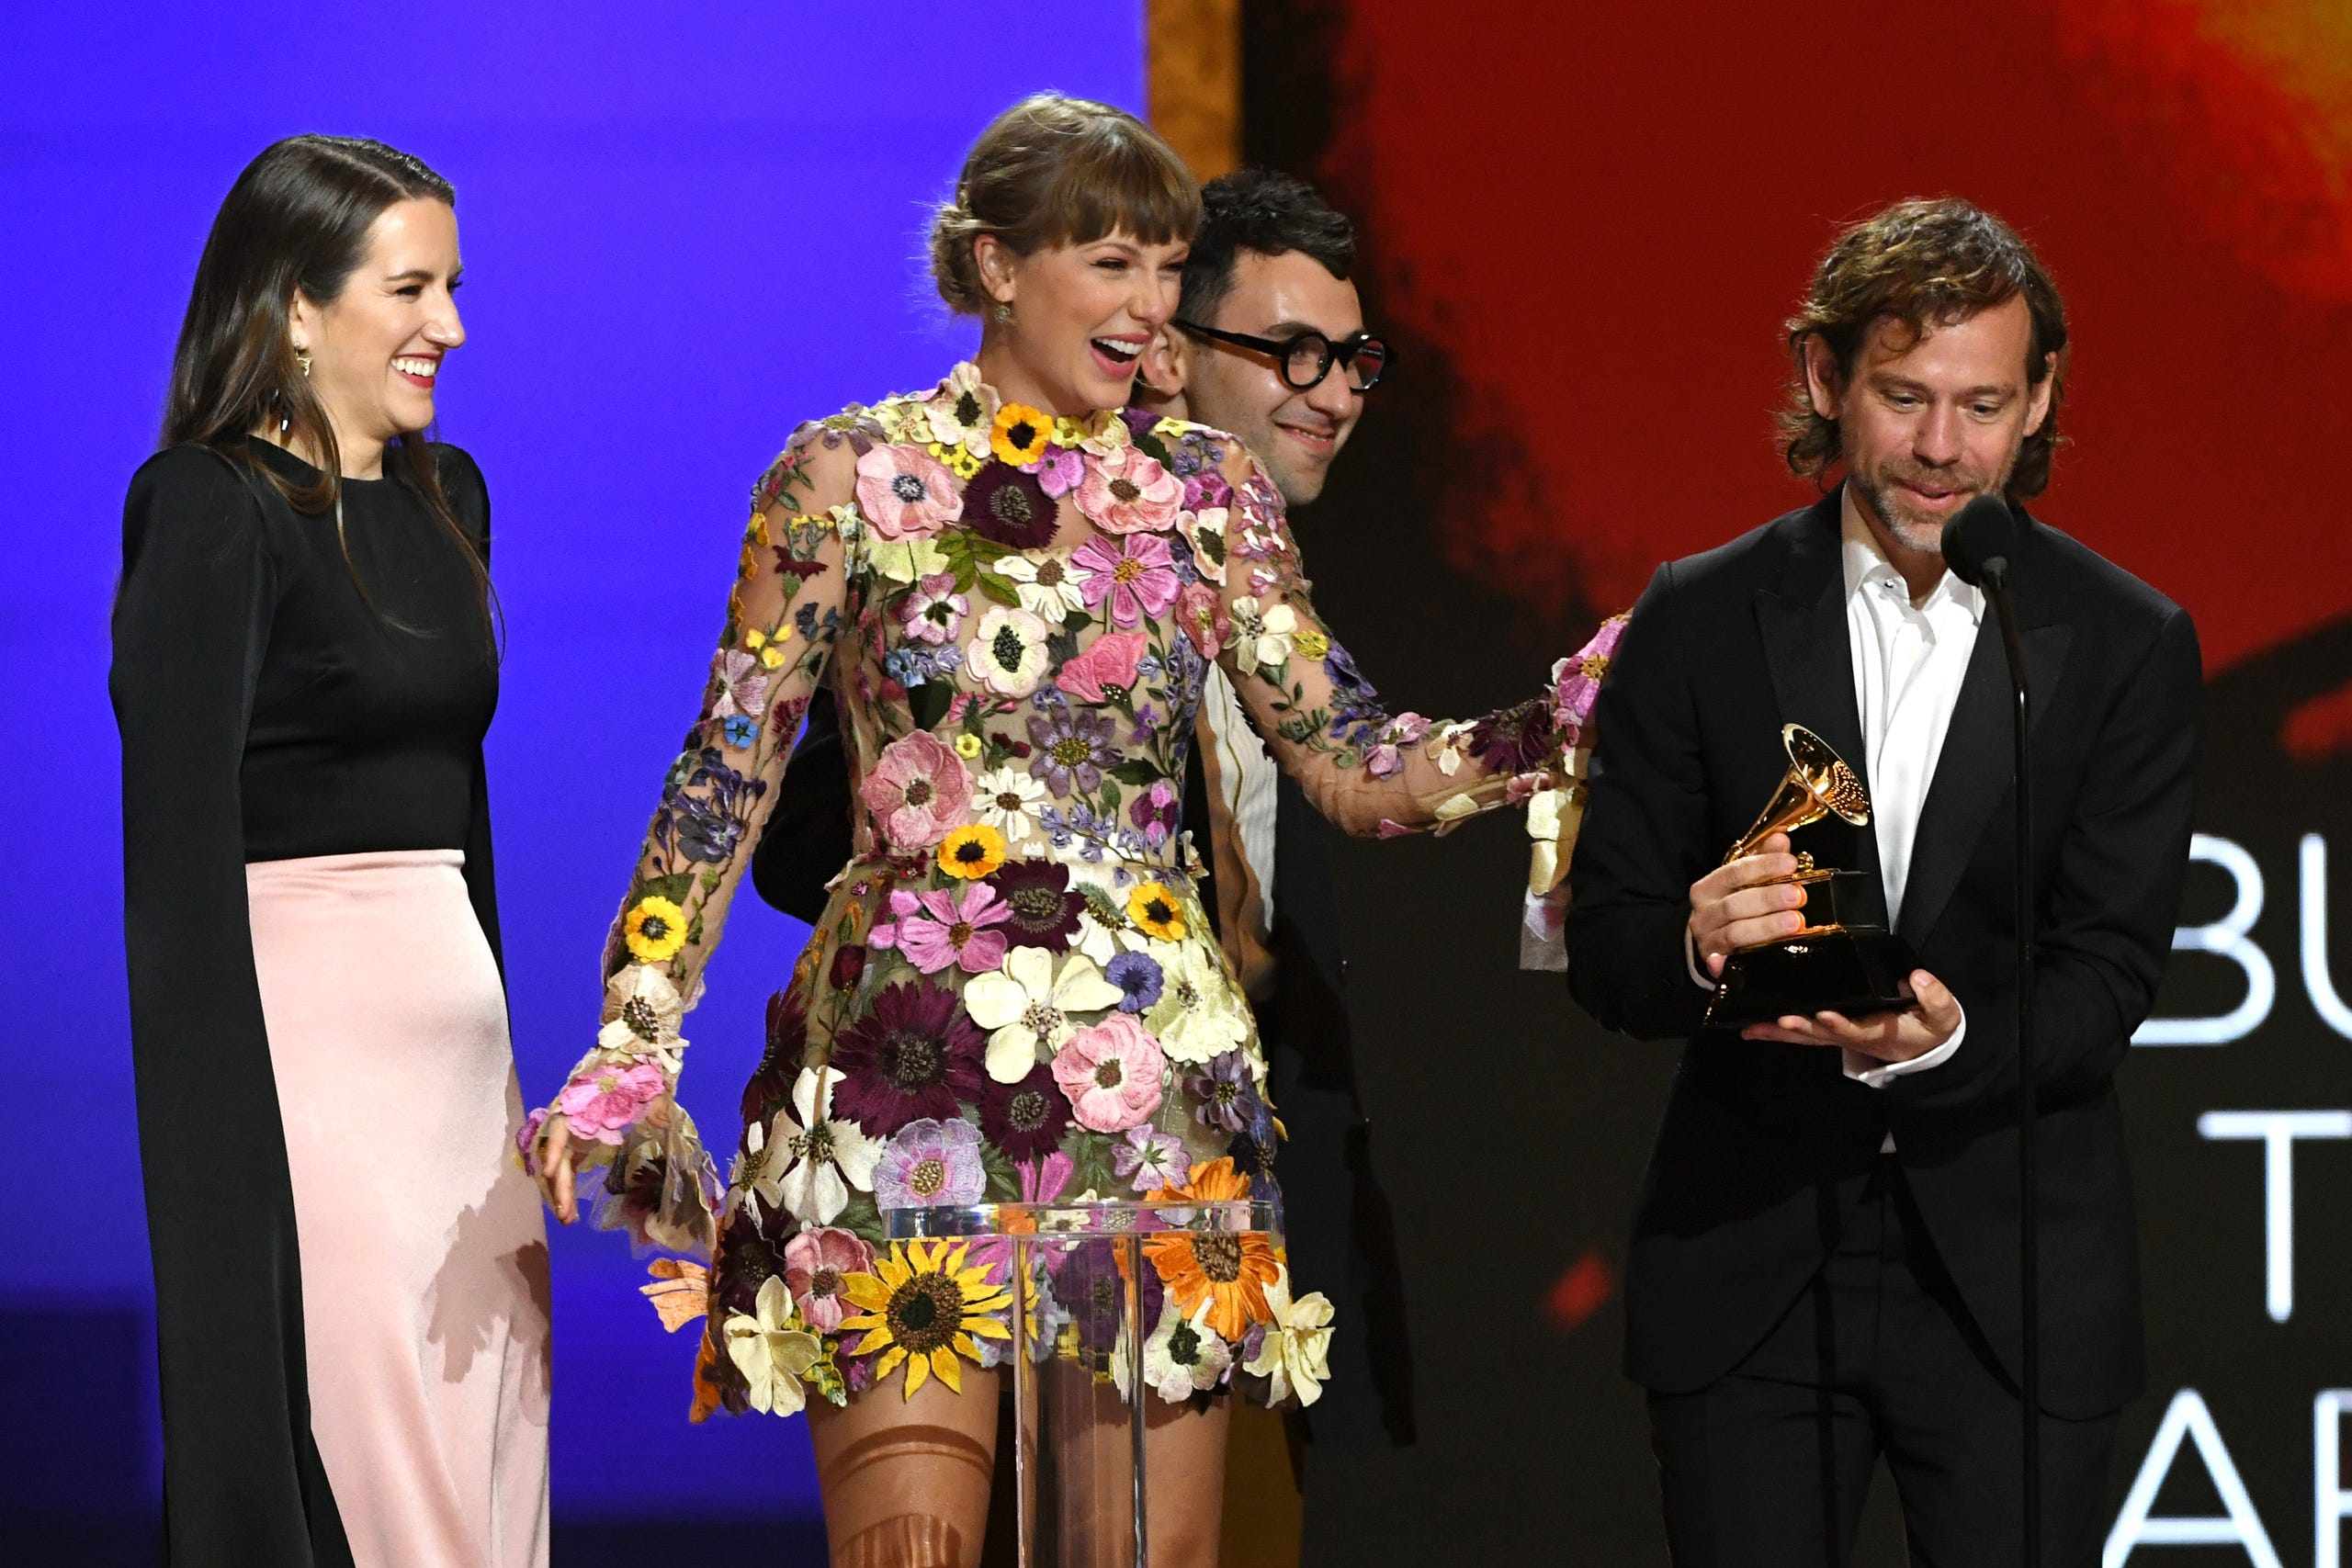 (L-R) Laura Sisk, Taylor Swift, Jack Antonoff, and Aaron Dessner accept the Album of the Year award for 'Folklore' onstage during the 63rd Annual GRAMMY Awards on March 14, 2021 in Los Angeles, California.